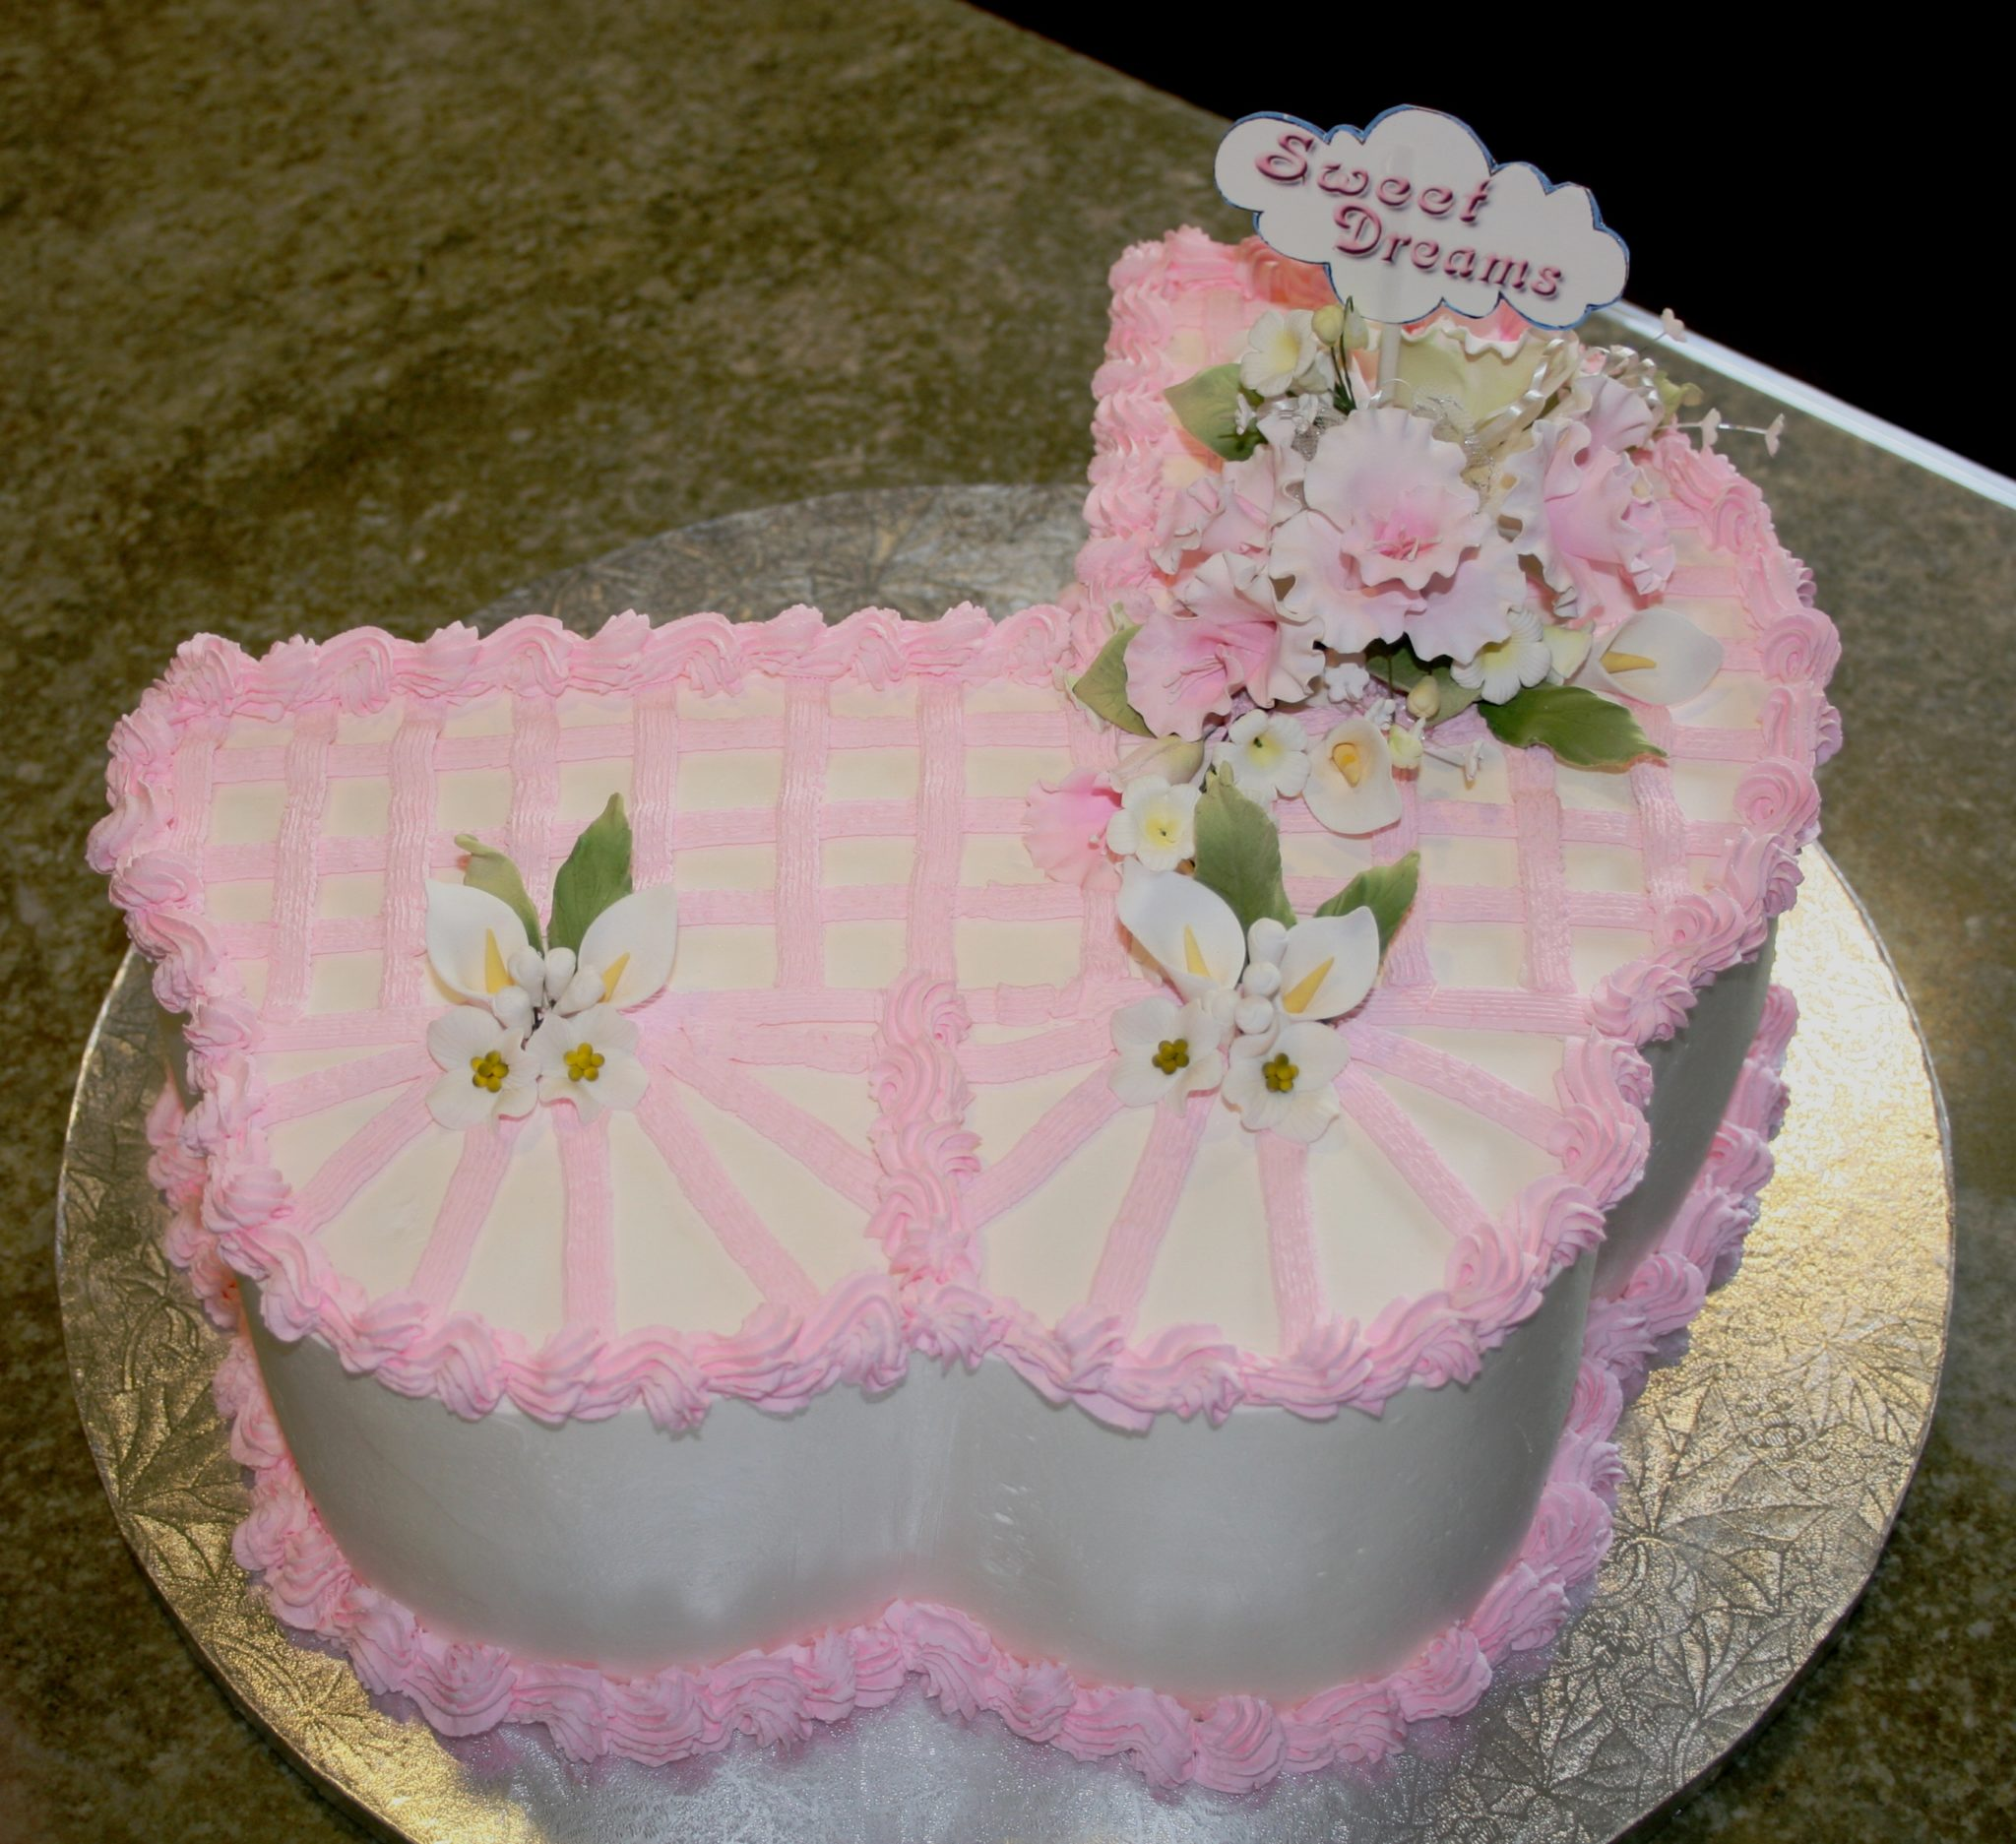 Cake Ideas For A Baby Girl : 70 Baby Shower Cakes and Cupcakes Ideas